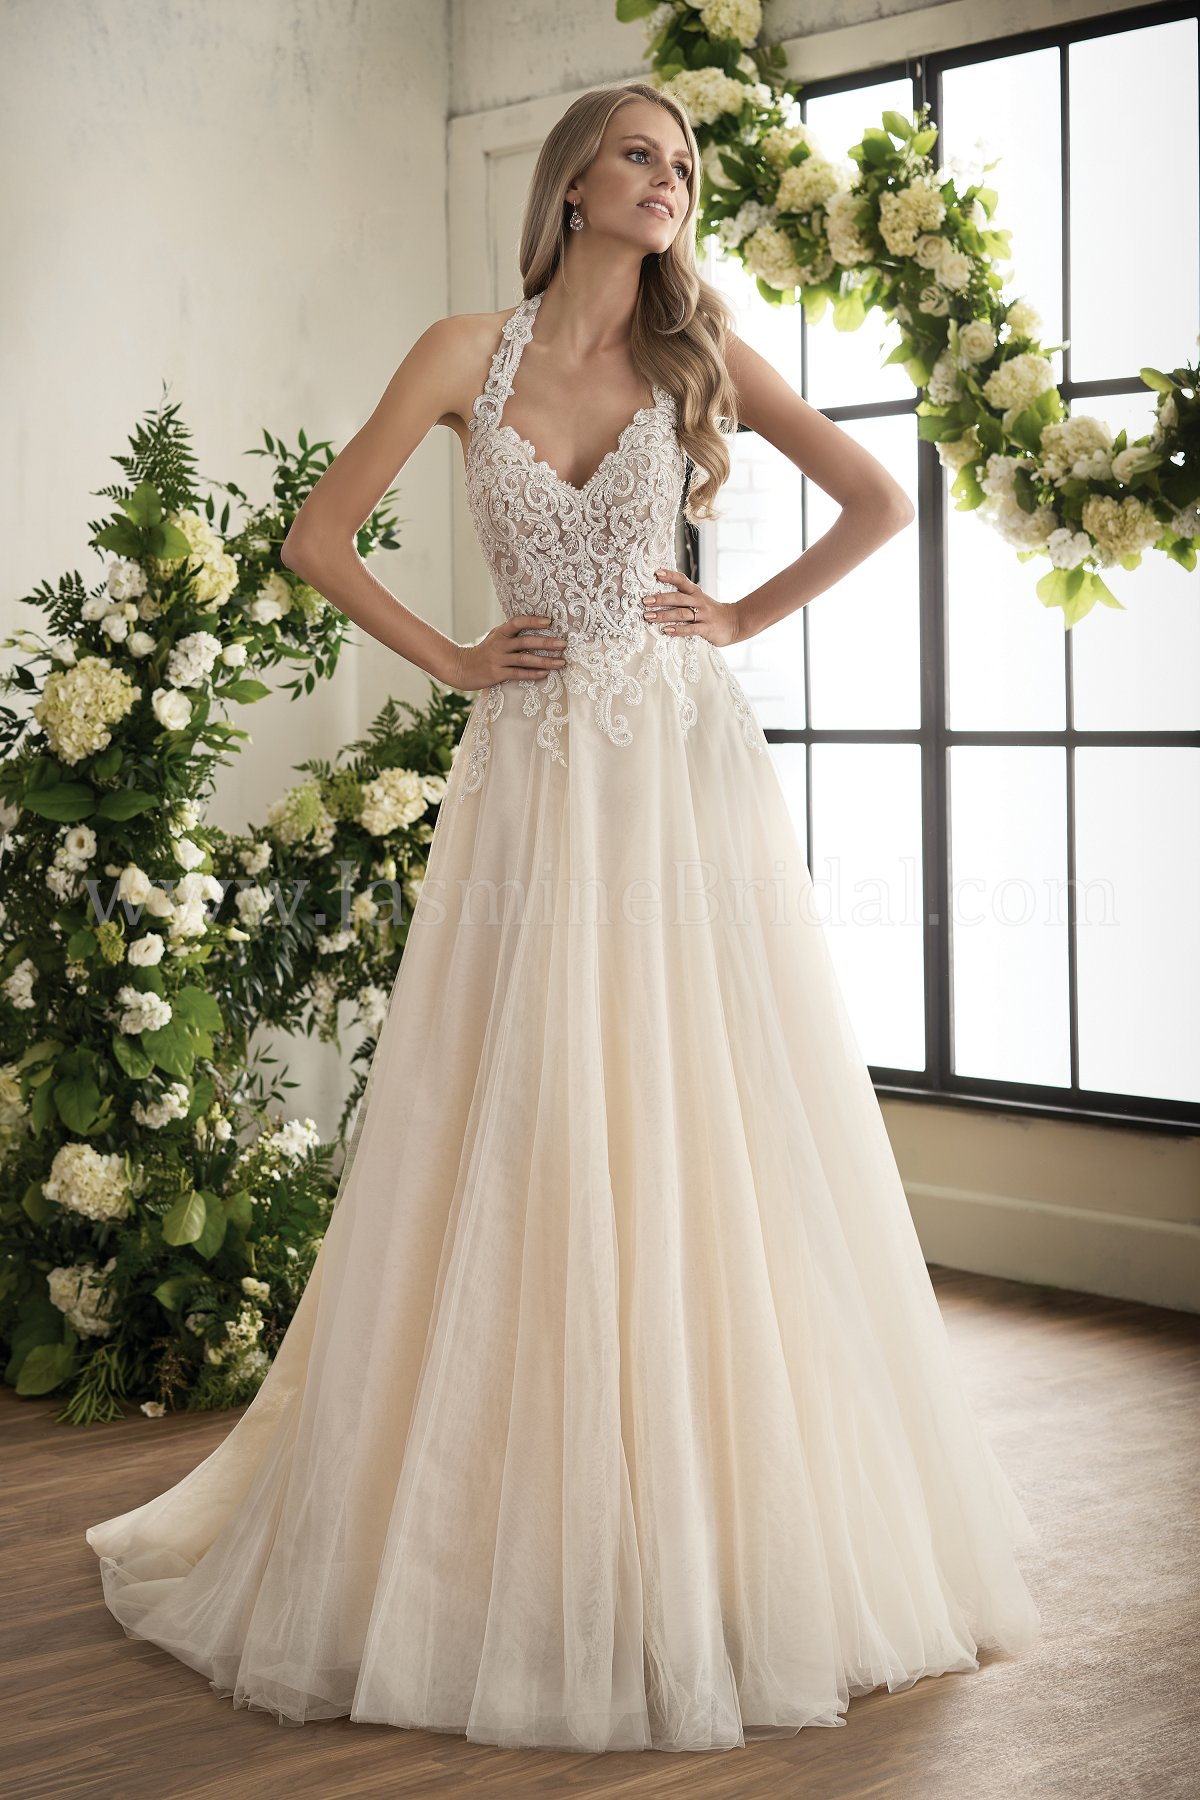 Bride Gowns T202008 Illusion Bodice V Neck Lace Bridal Gown Wedding